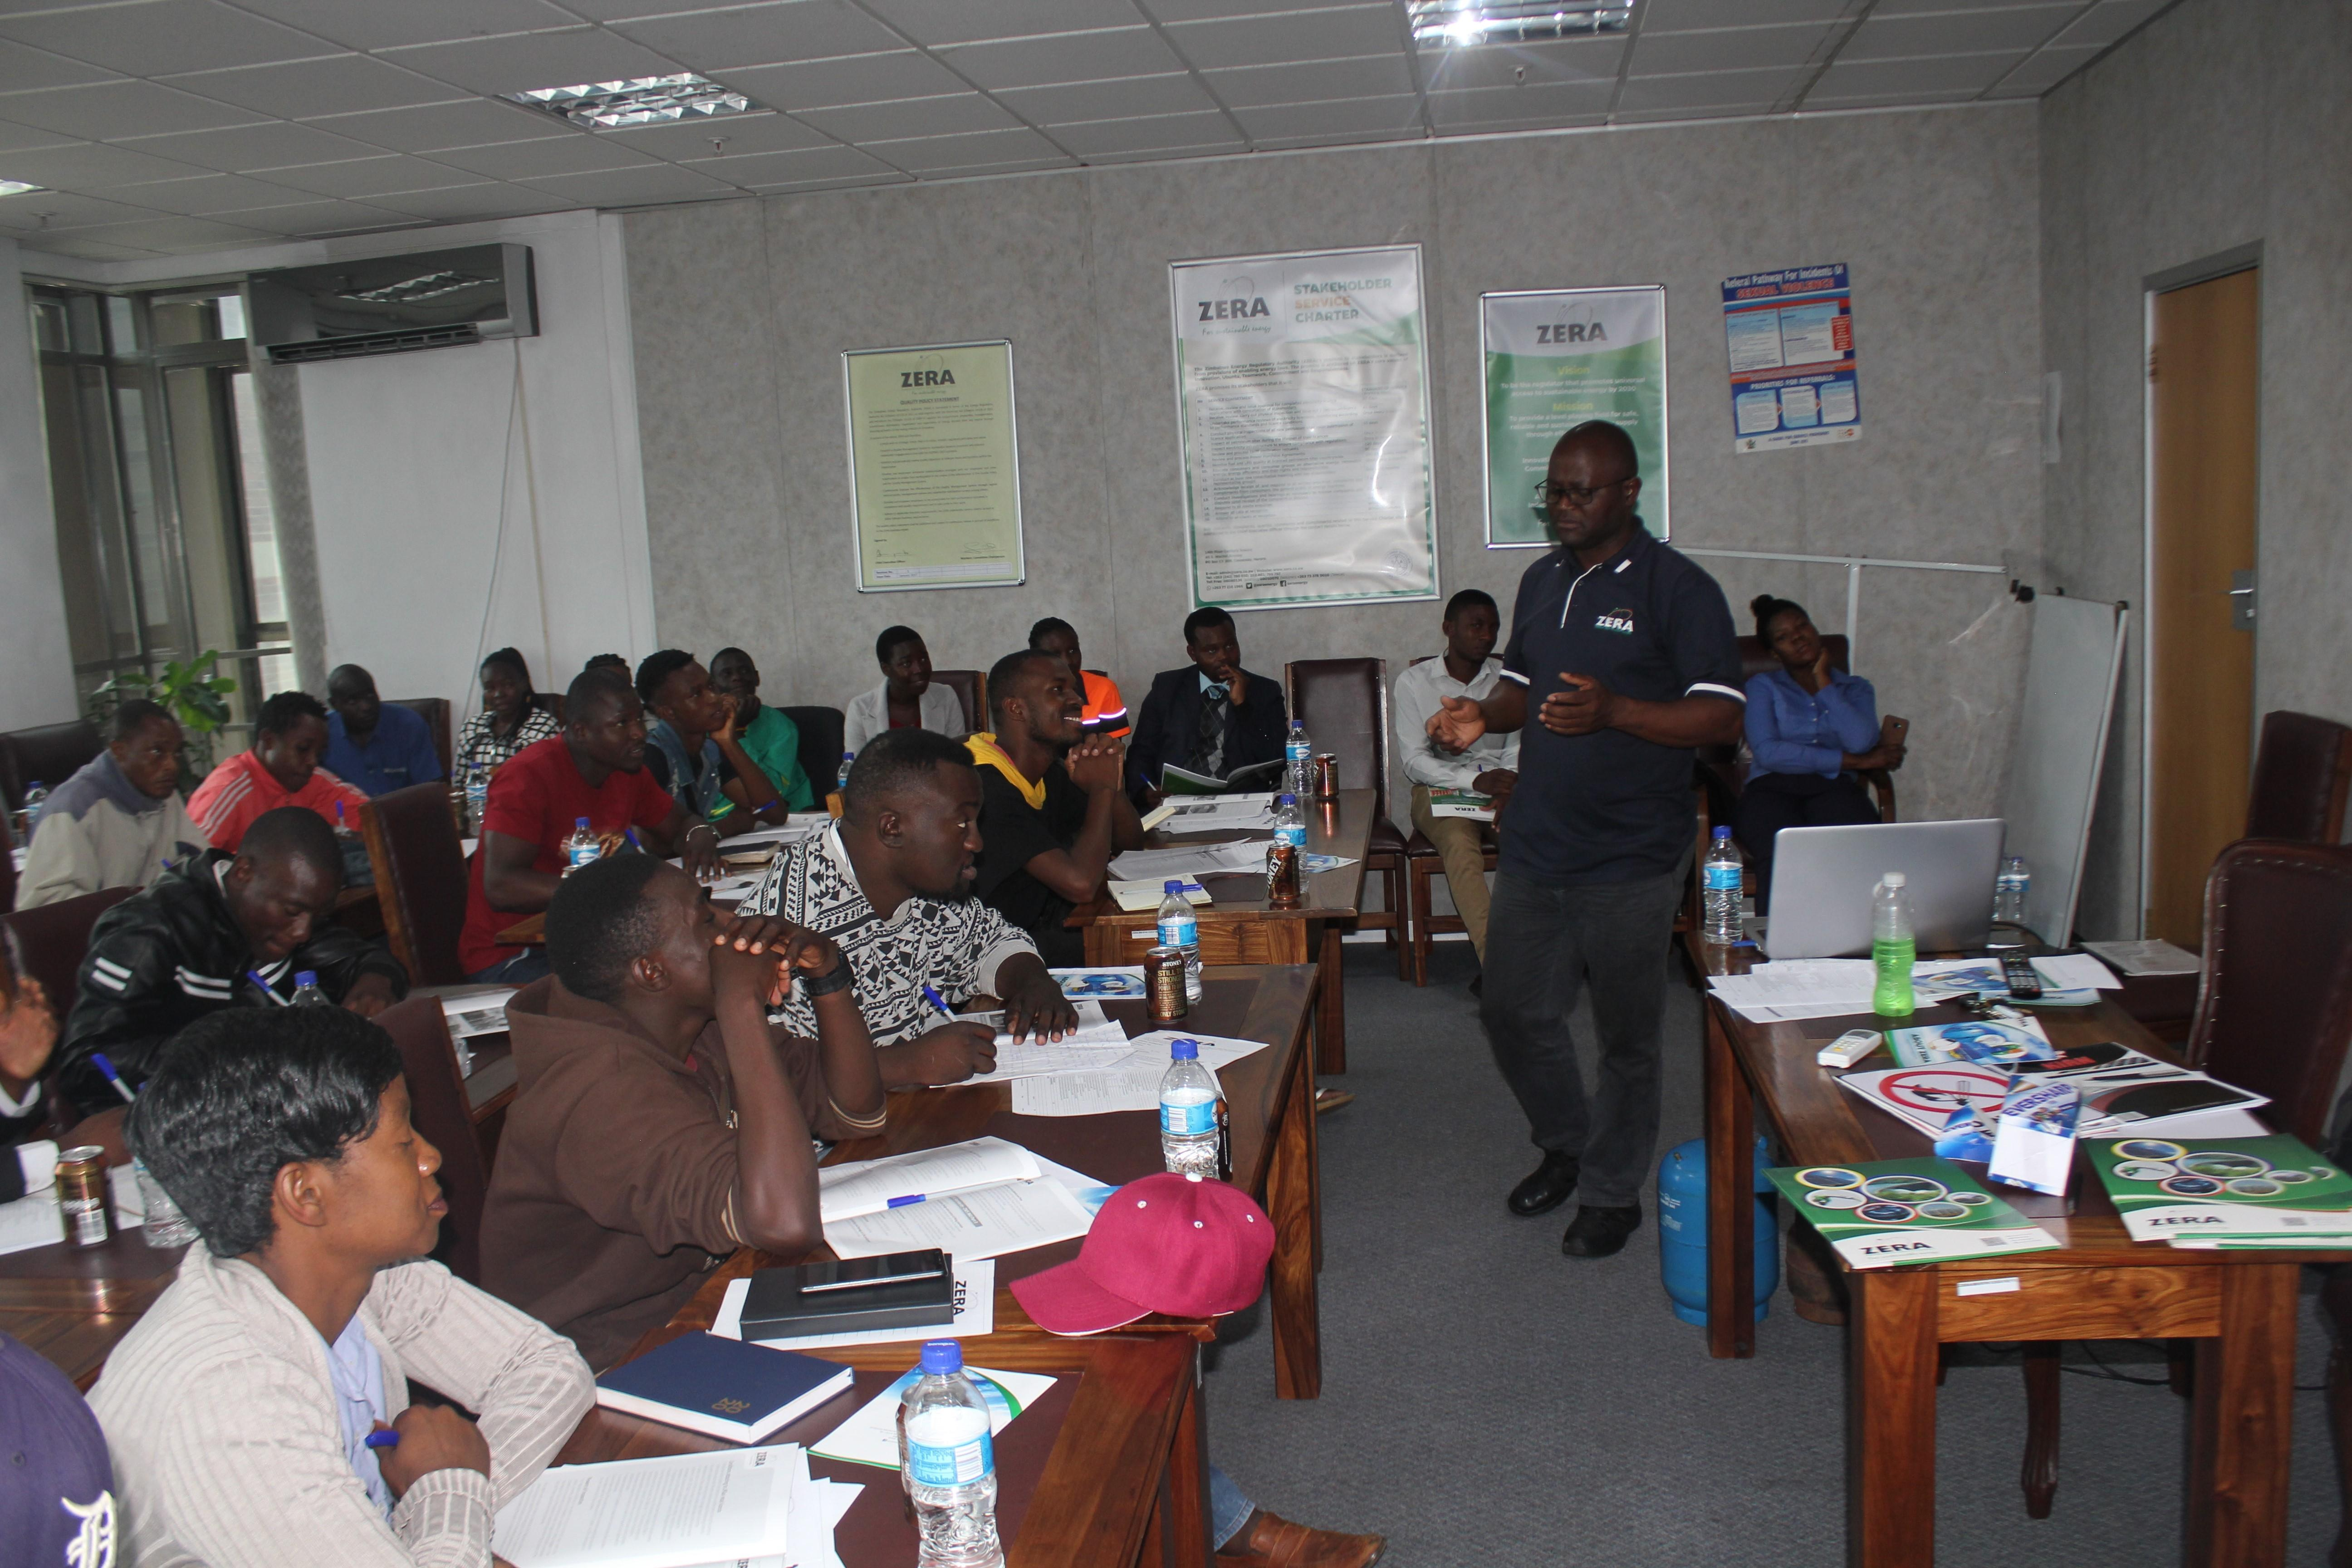 ZERA trains LPG fillers and operators